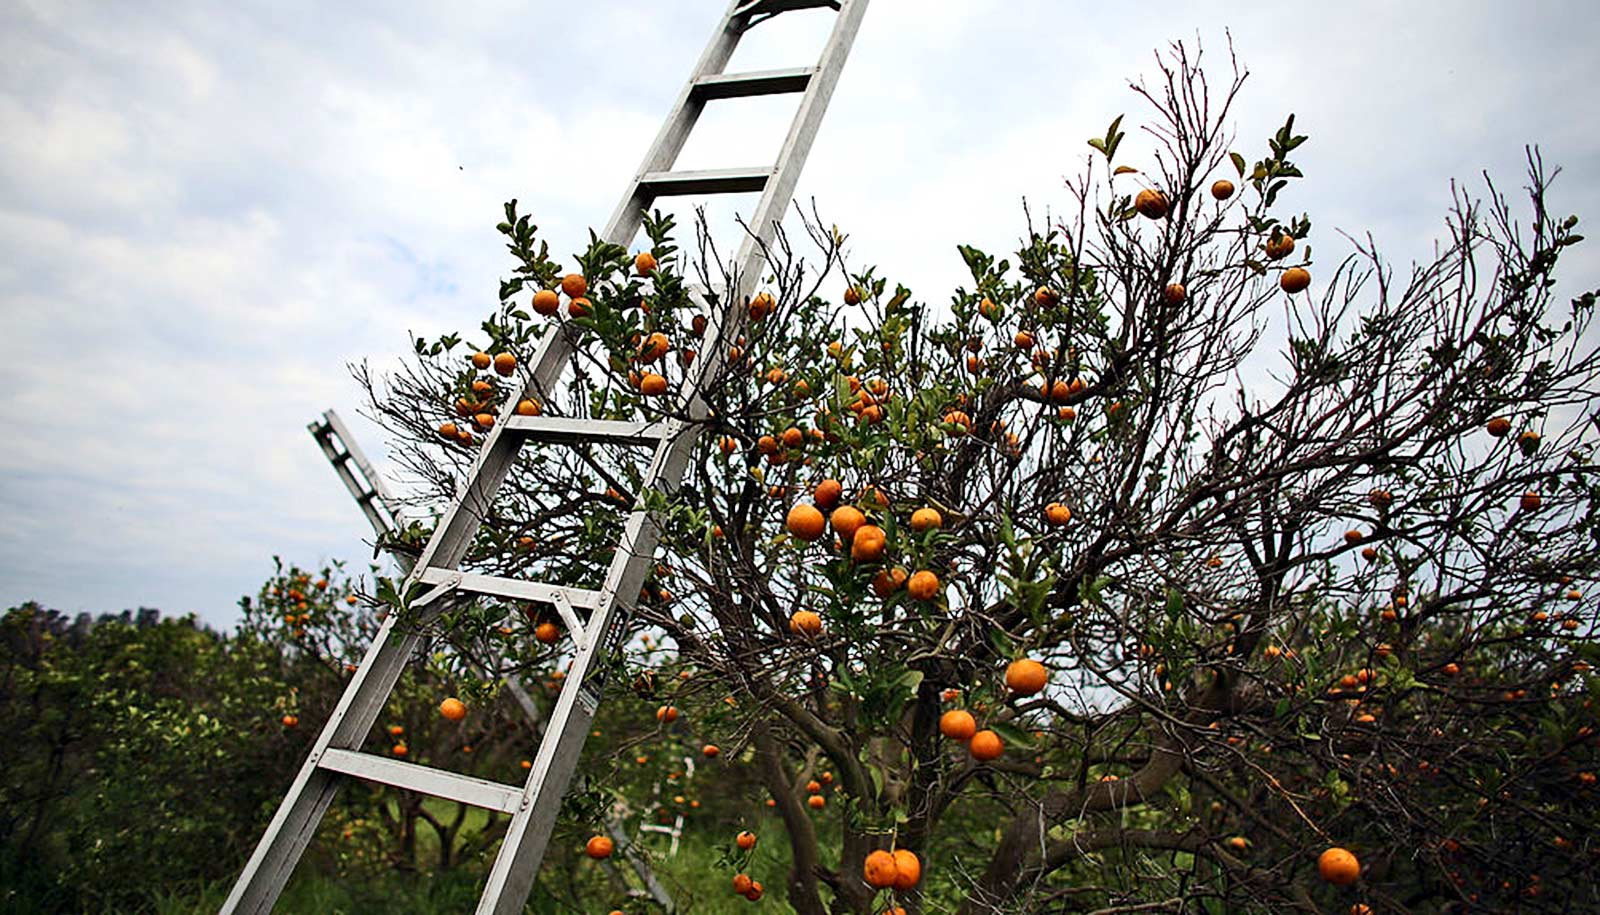 System finds 130 compounds that could save citrus